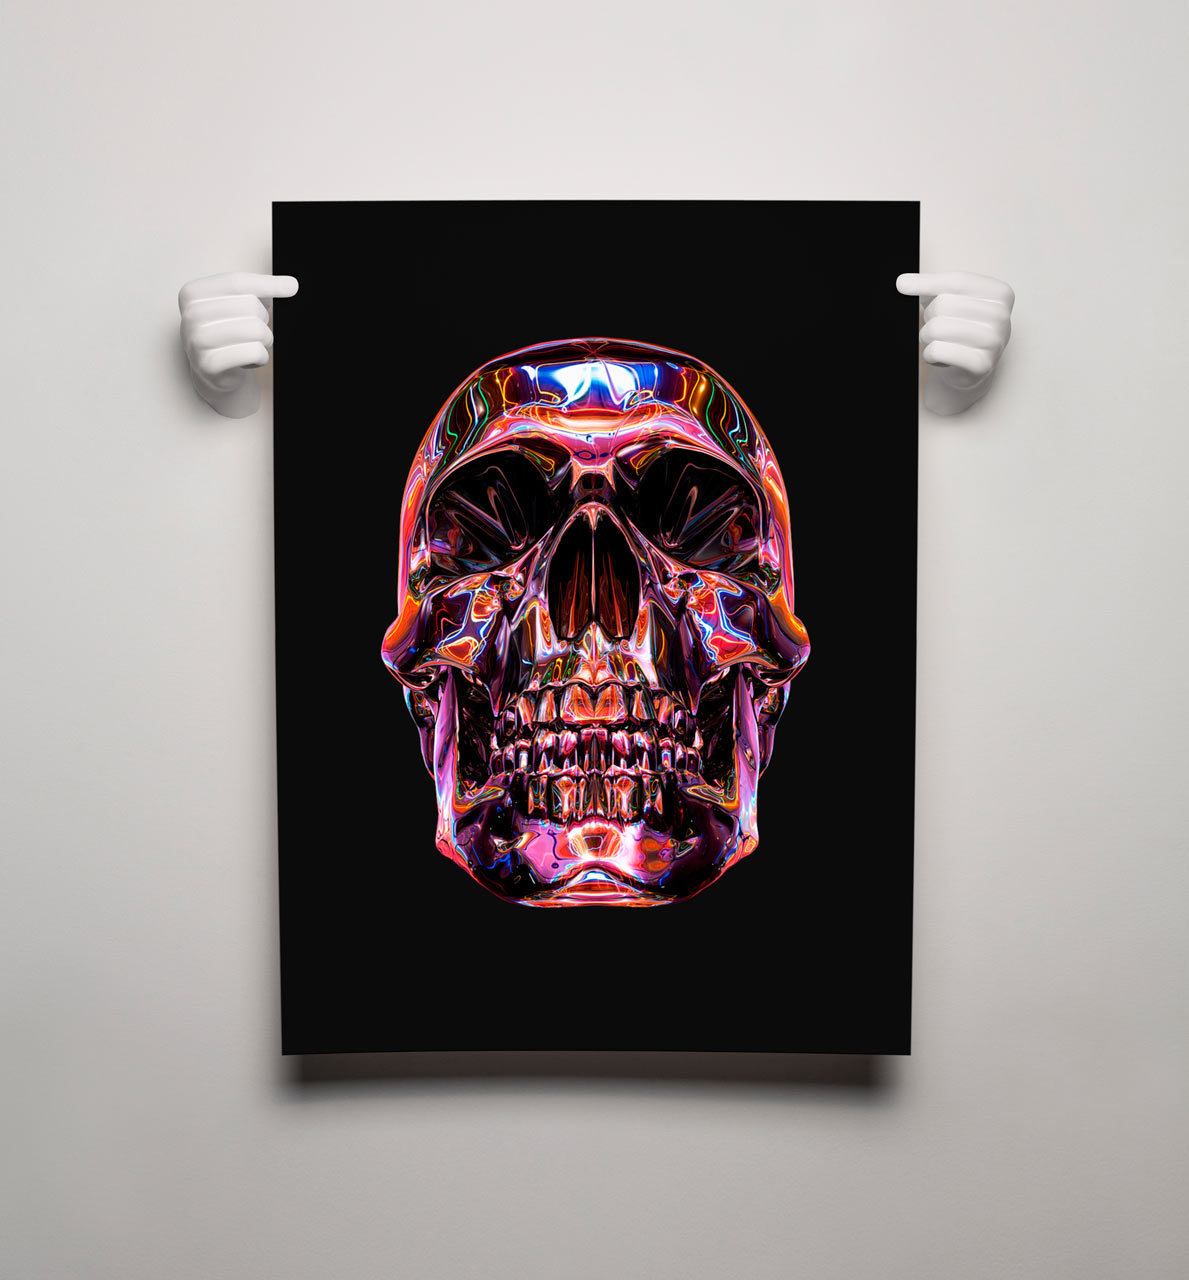 Poster design using 3d objects - 3d Printed Hands To Hold Your Prints Posters